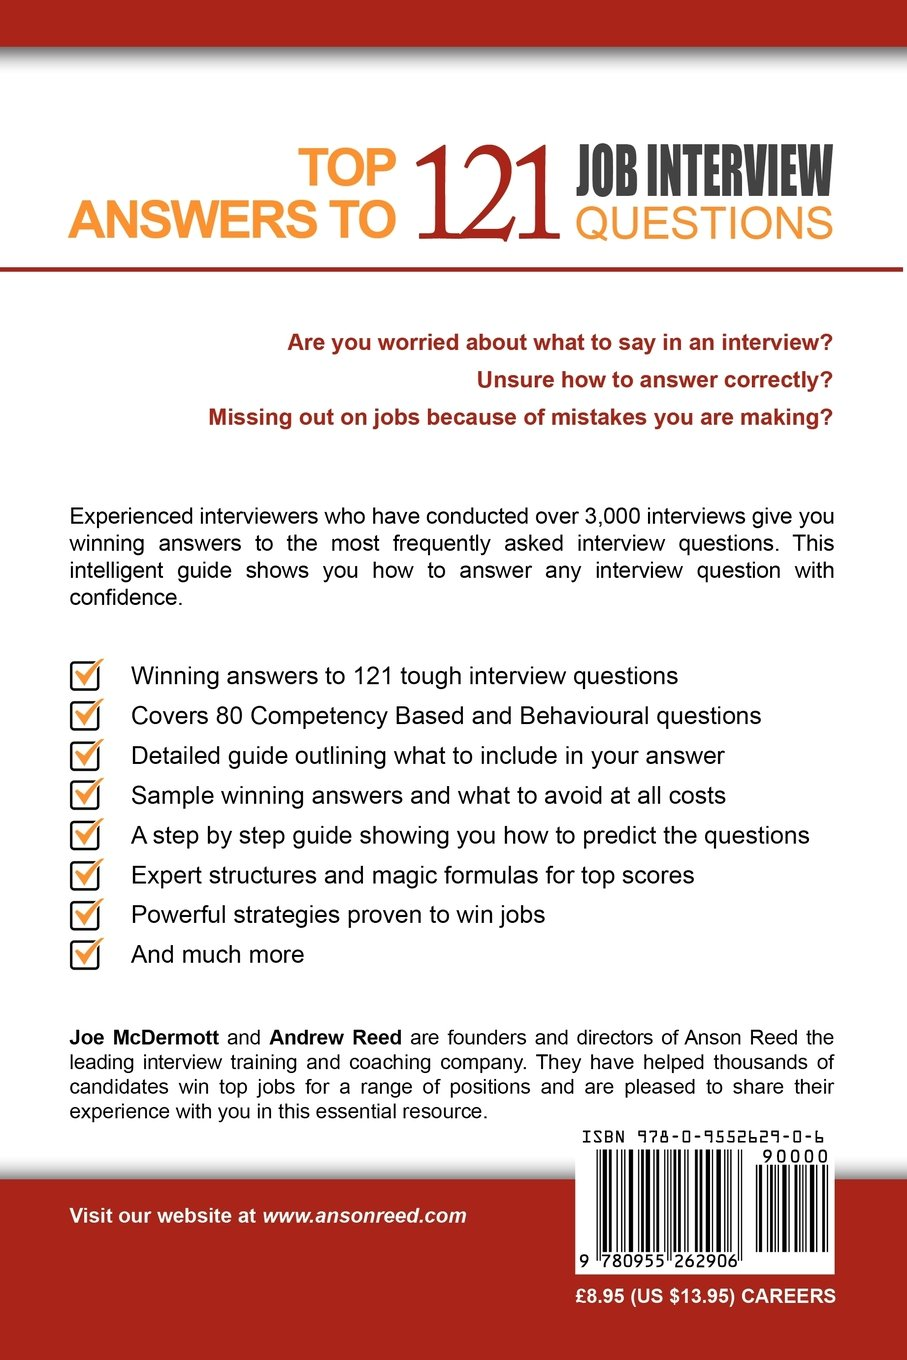 top answers to 121 job interview questions amazon co uk joe top answers to 121 job interview questions amazon co uk joe mcdermott andrew reed 9780955262906 books